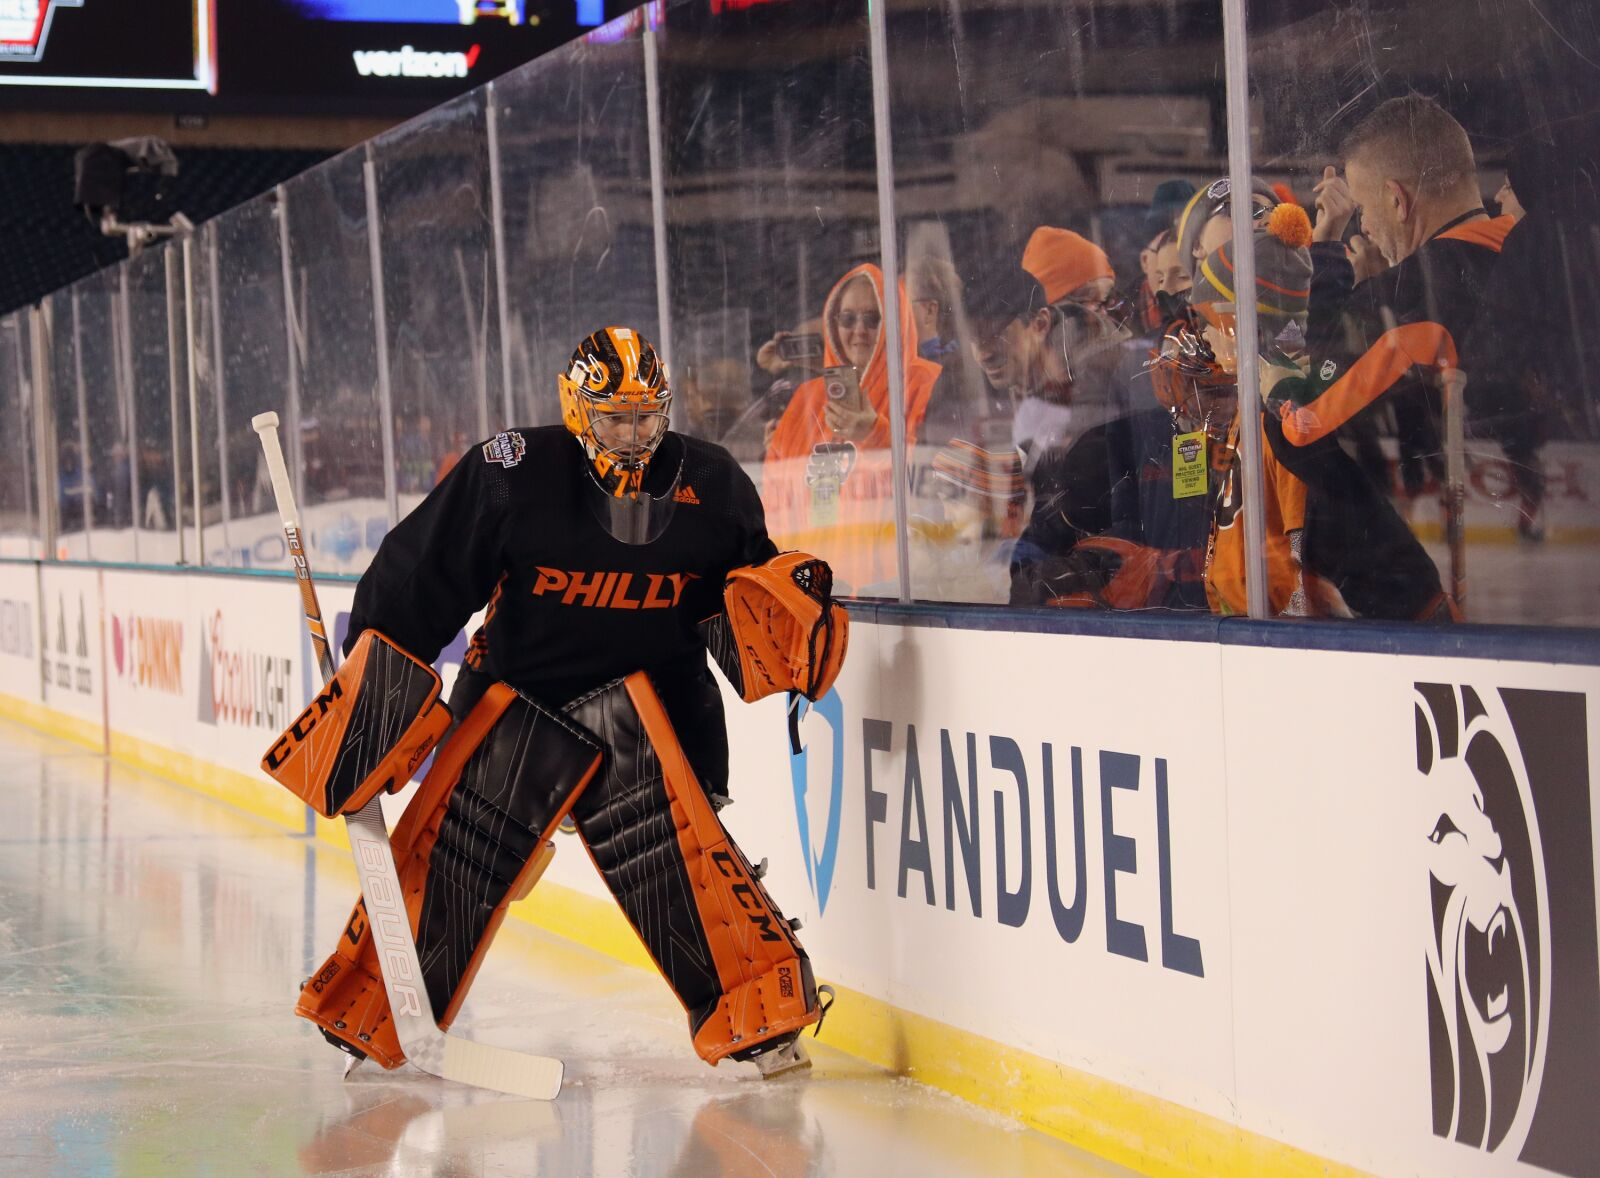 Flyers' goalie has a sweet Eagles themed helmet for Saturday's game